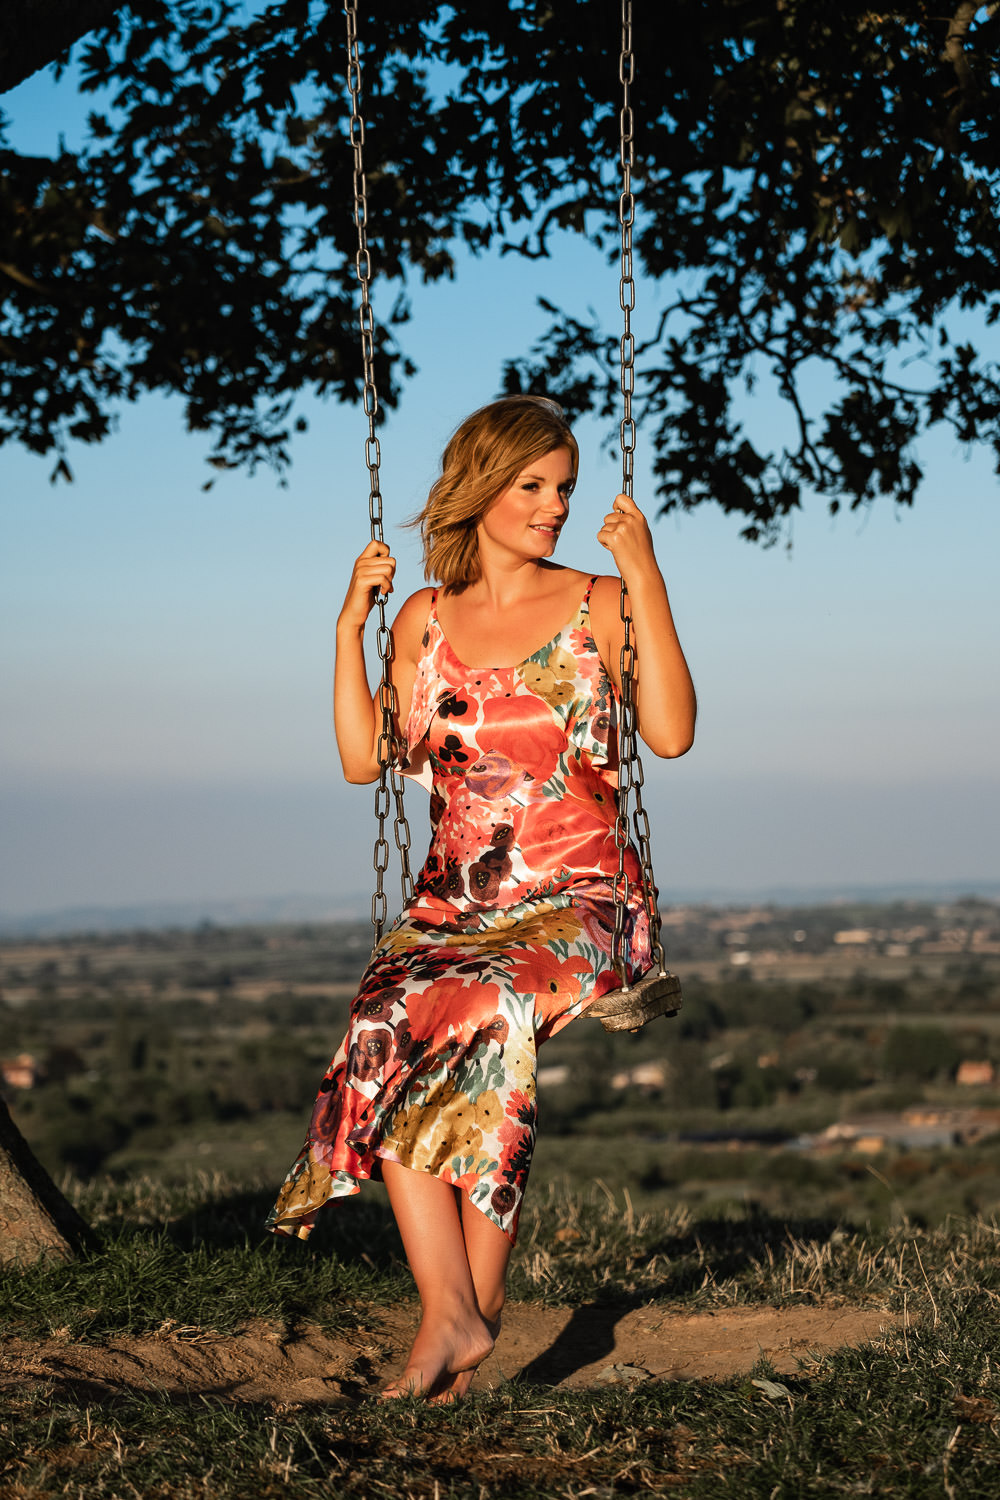 Women sat on the swing at Burrow Hill, Kingsbury Epicopi, wearing a satin floral dress as the winds gently blows her hair back.